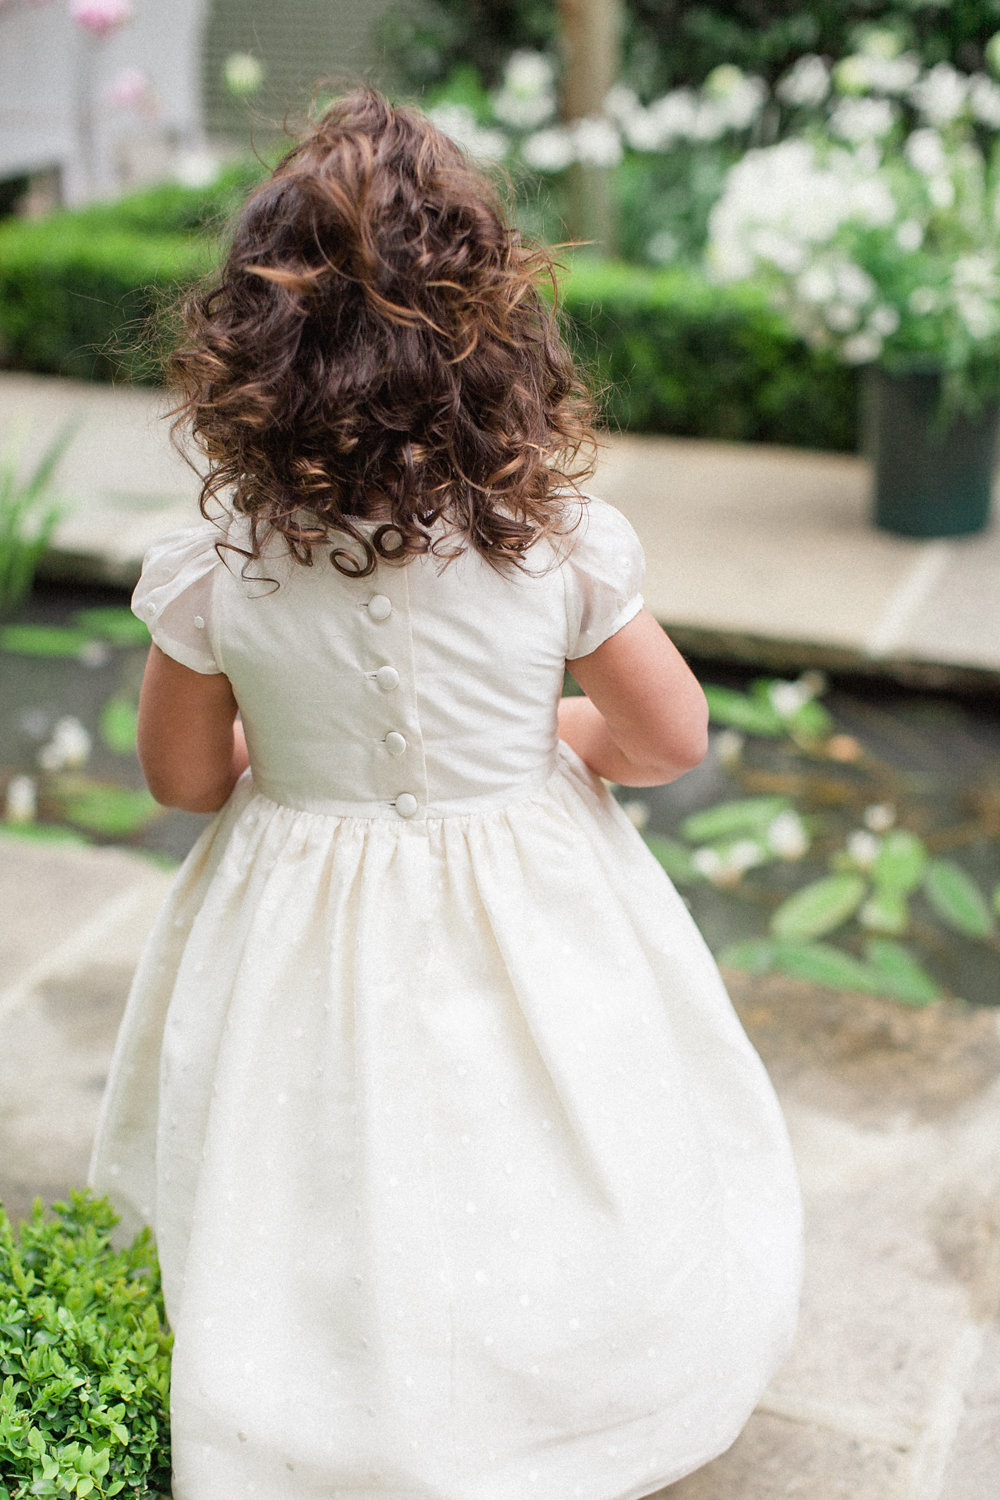 flower girl dress - photo by Roberta Facchini Photography http://ruffledblog.com/herbarium-inspired-wedding-ideas